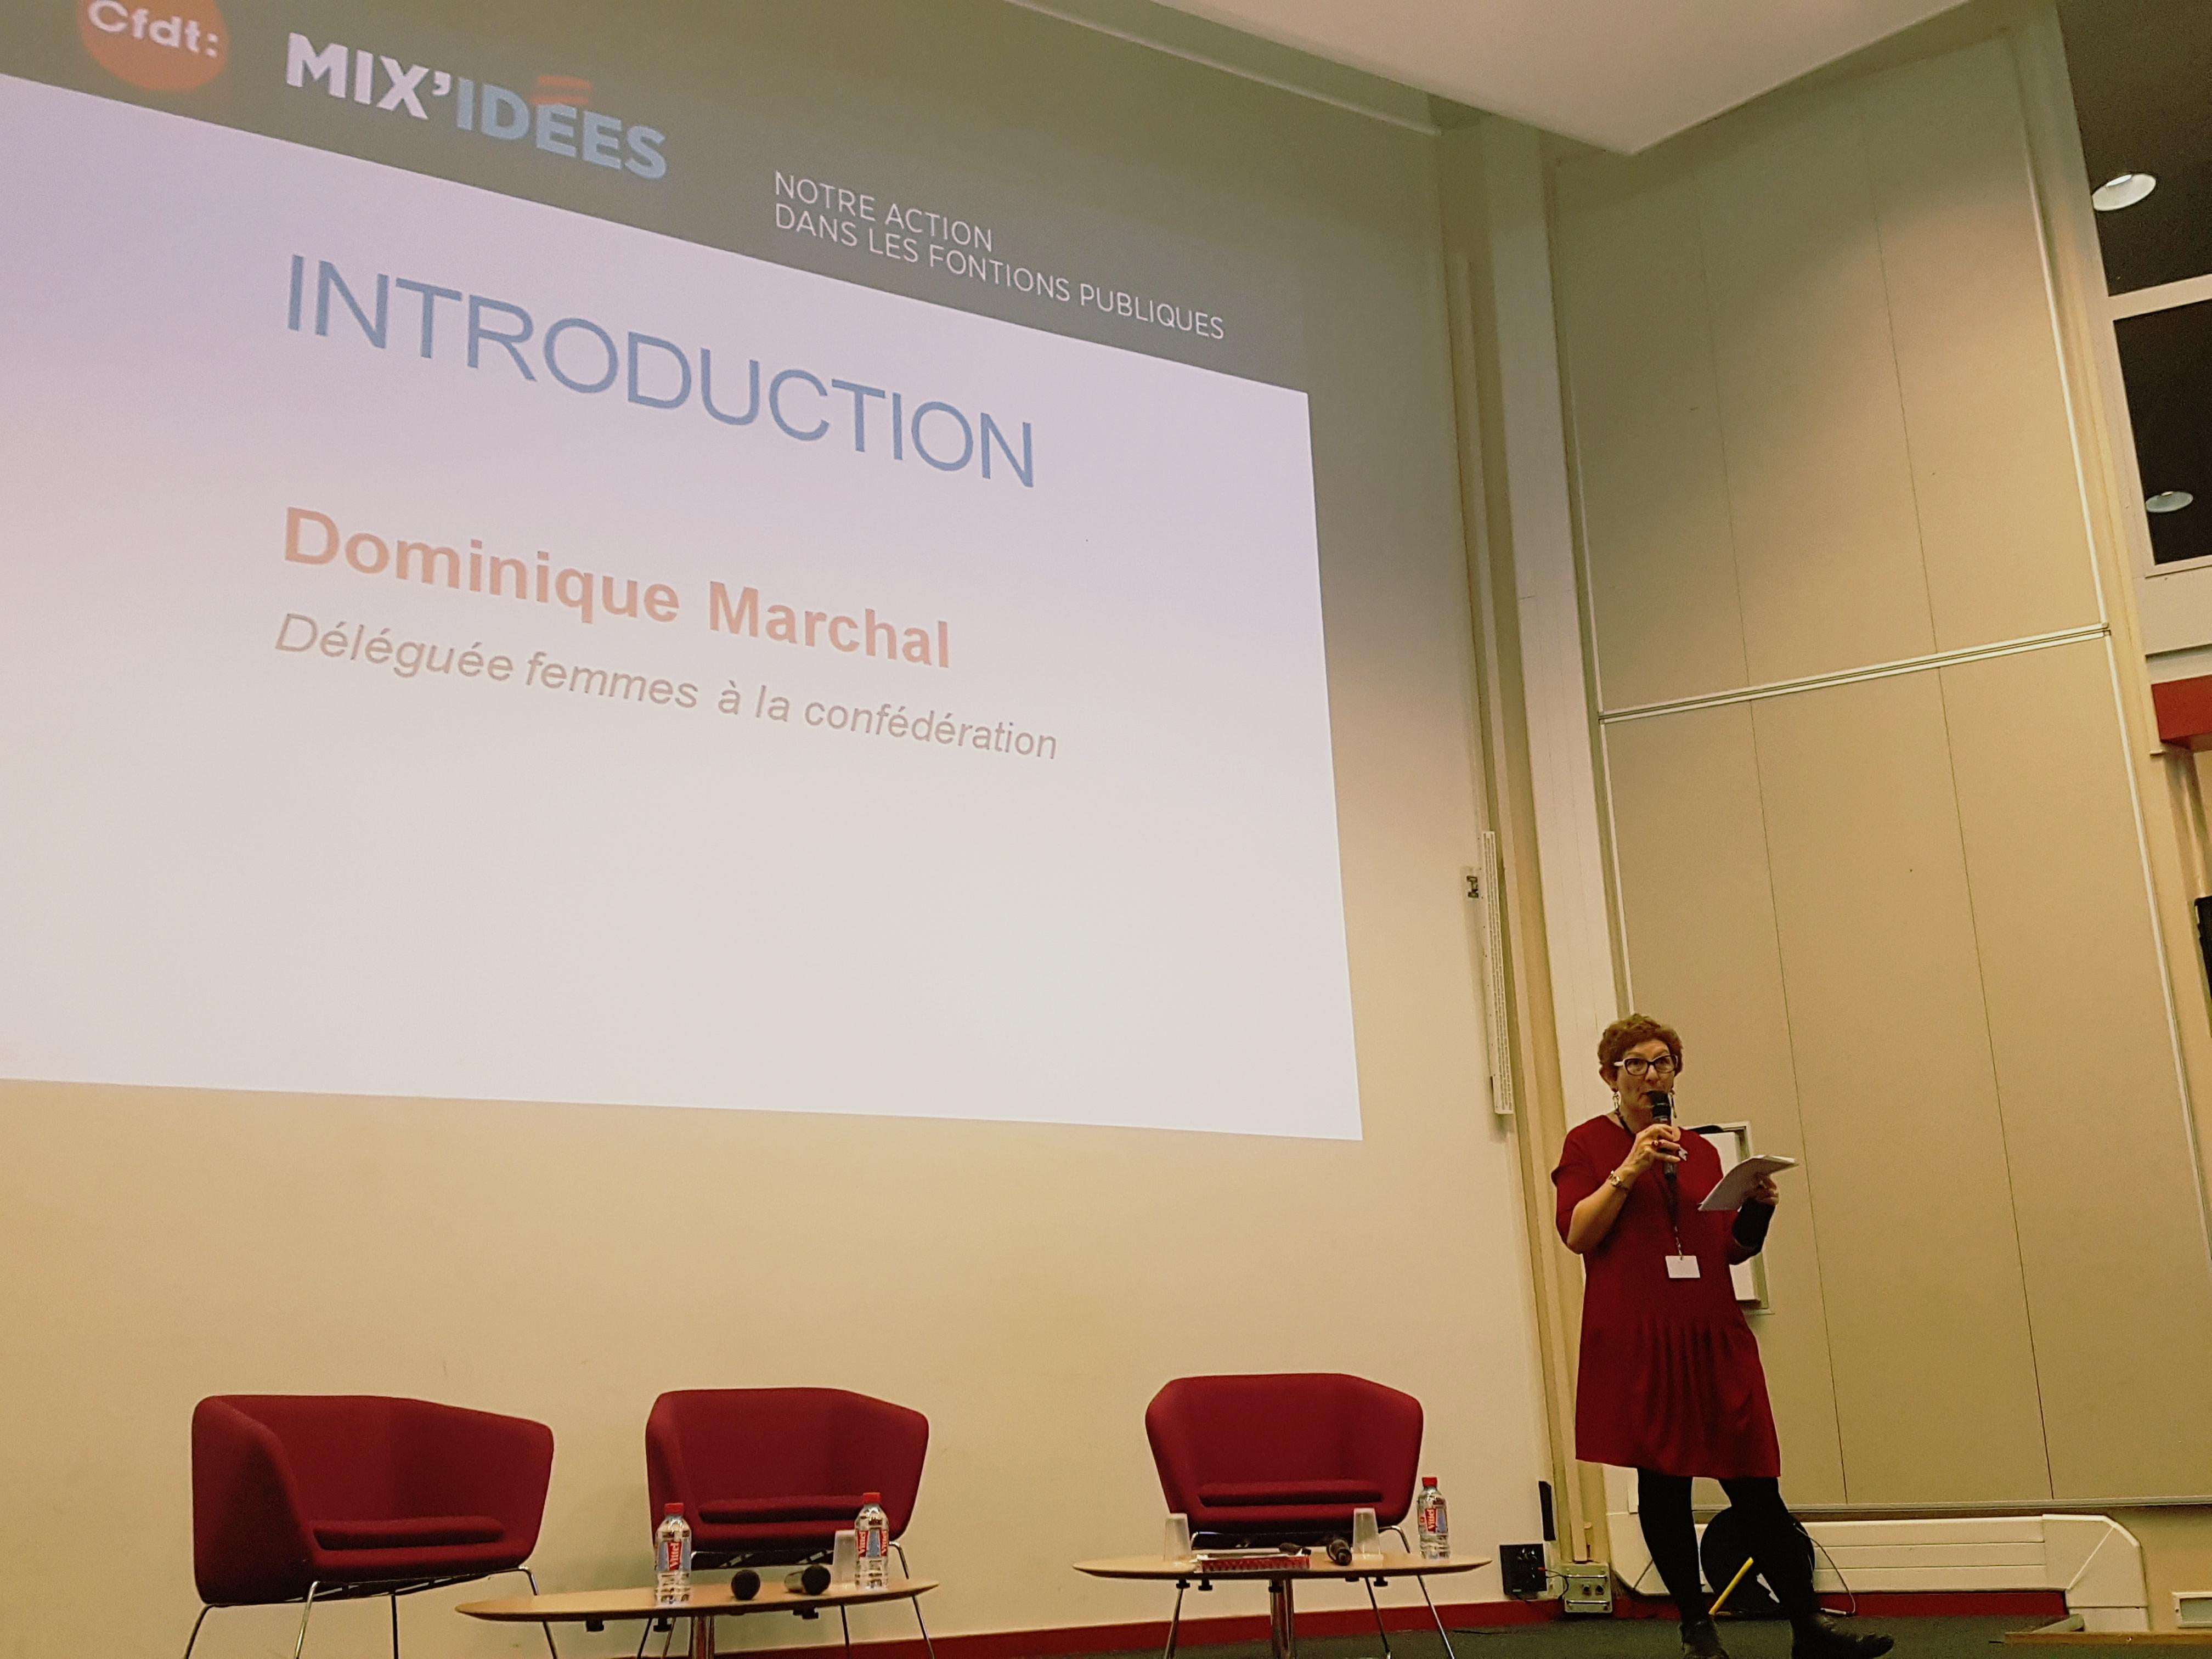 introduction-dominique-marchal-mixidees-pour-l-egalite-confederation-2018-cfdt-occitanie